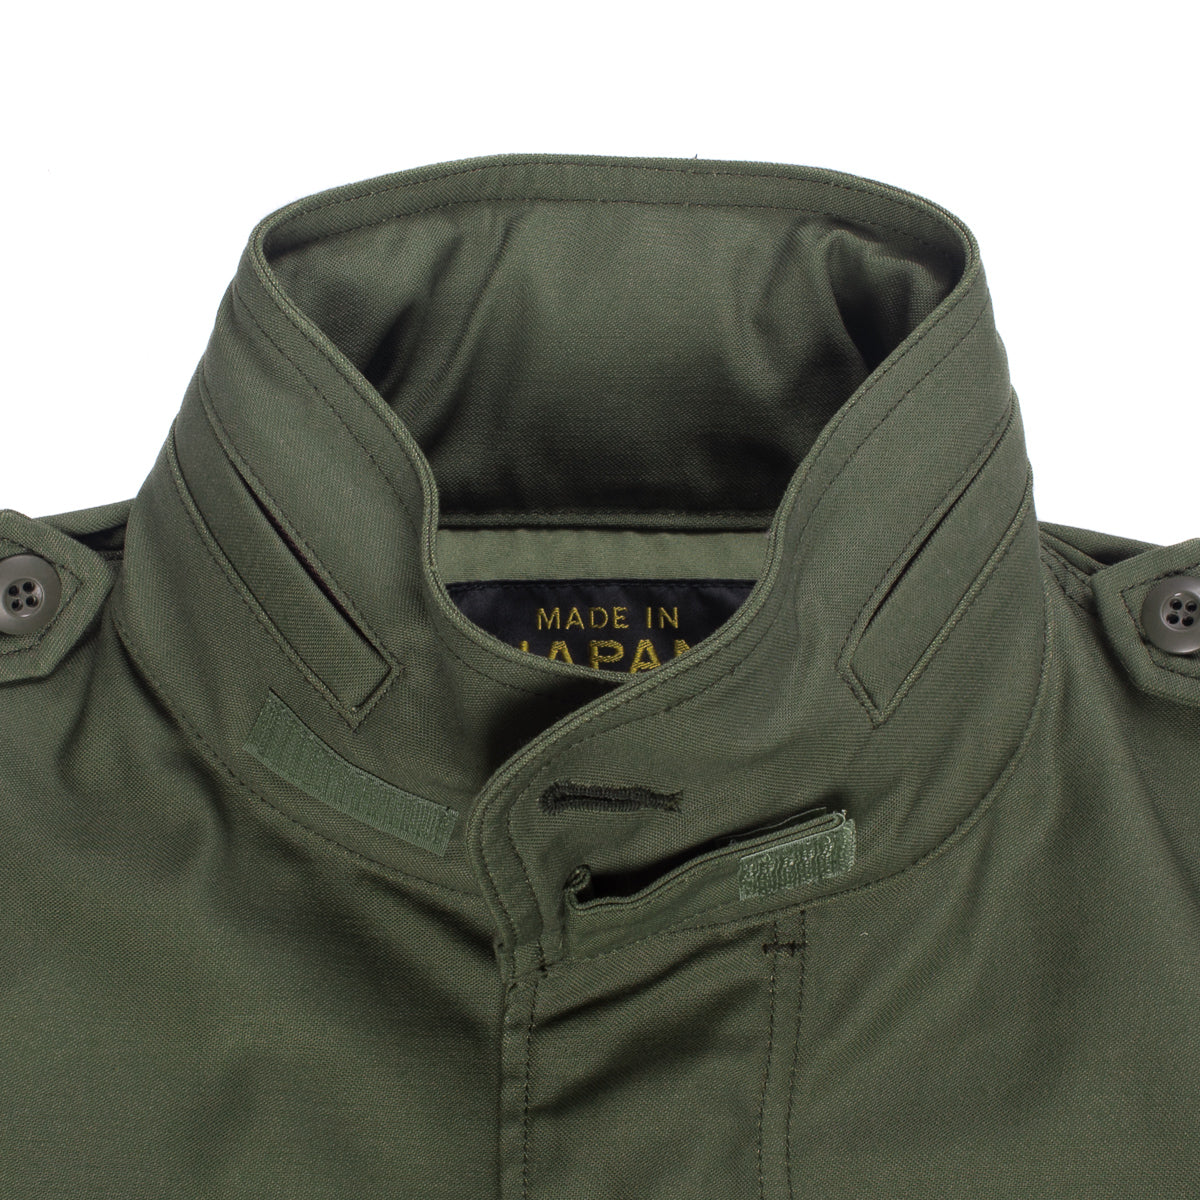 IHM-27-OLV - Sateen M65 Field Jacket Olive